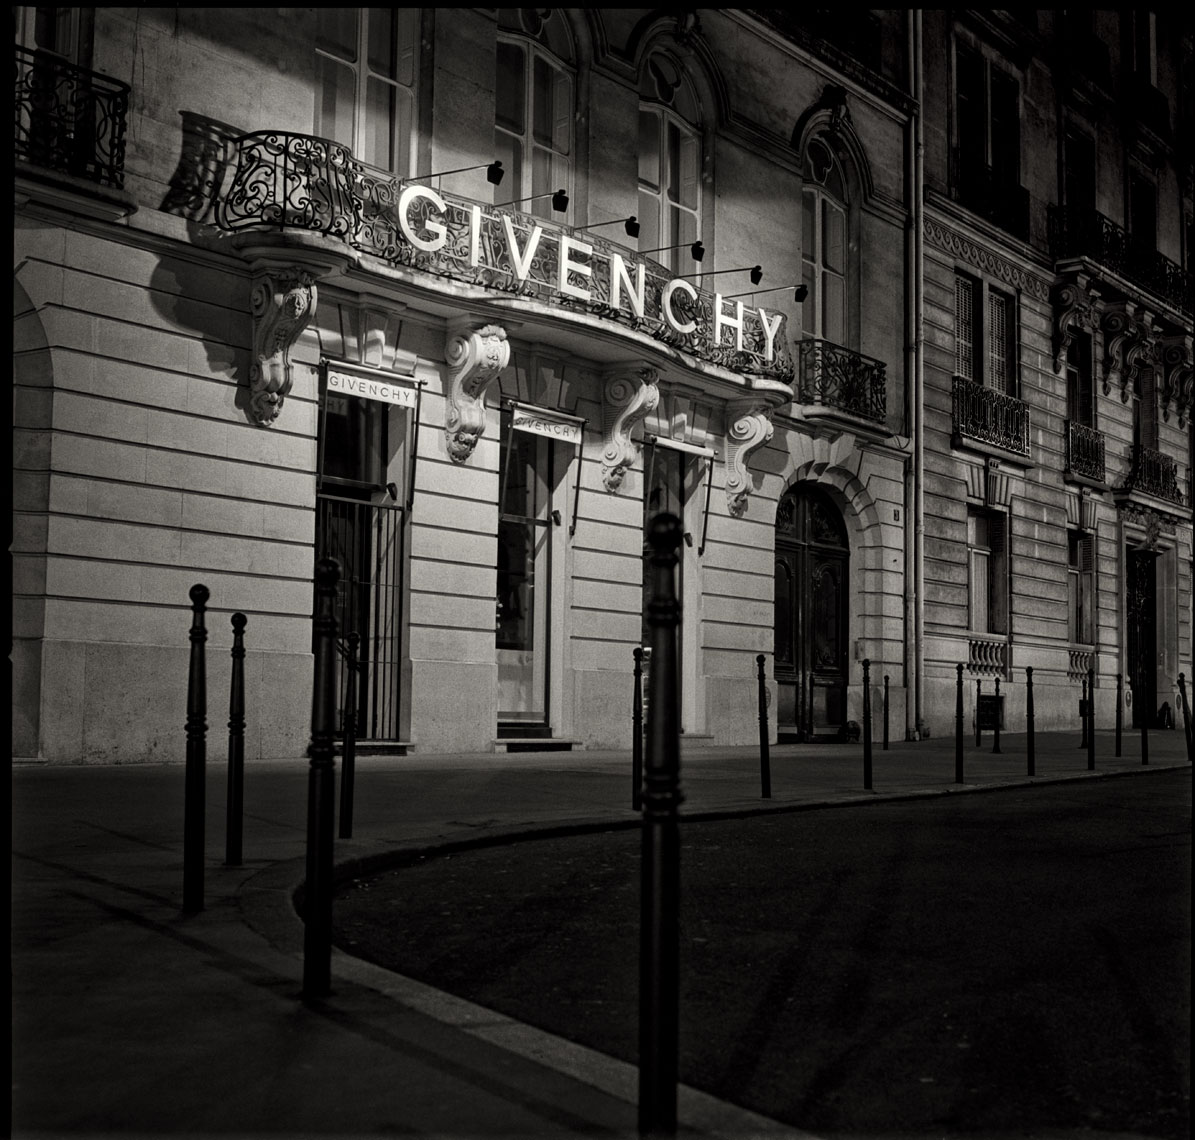 Paris-Nights-064-Edit